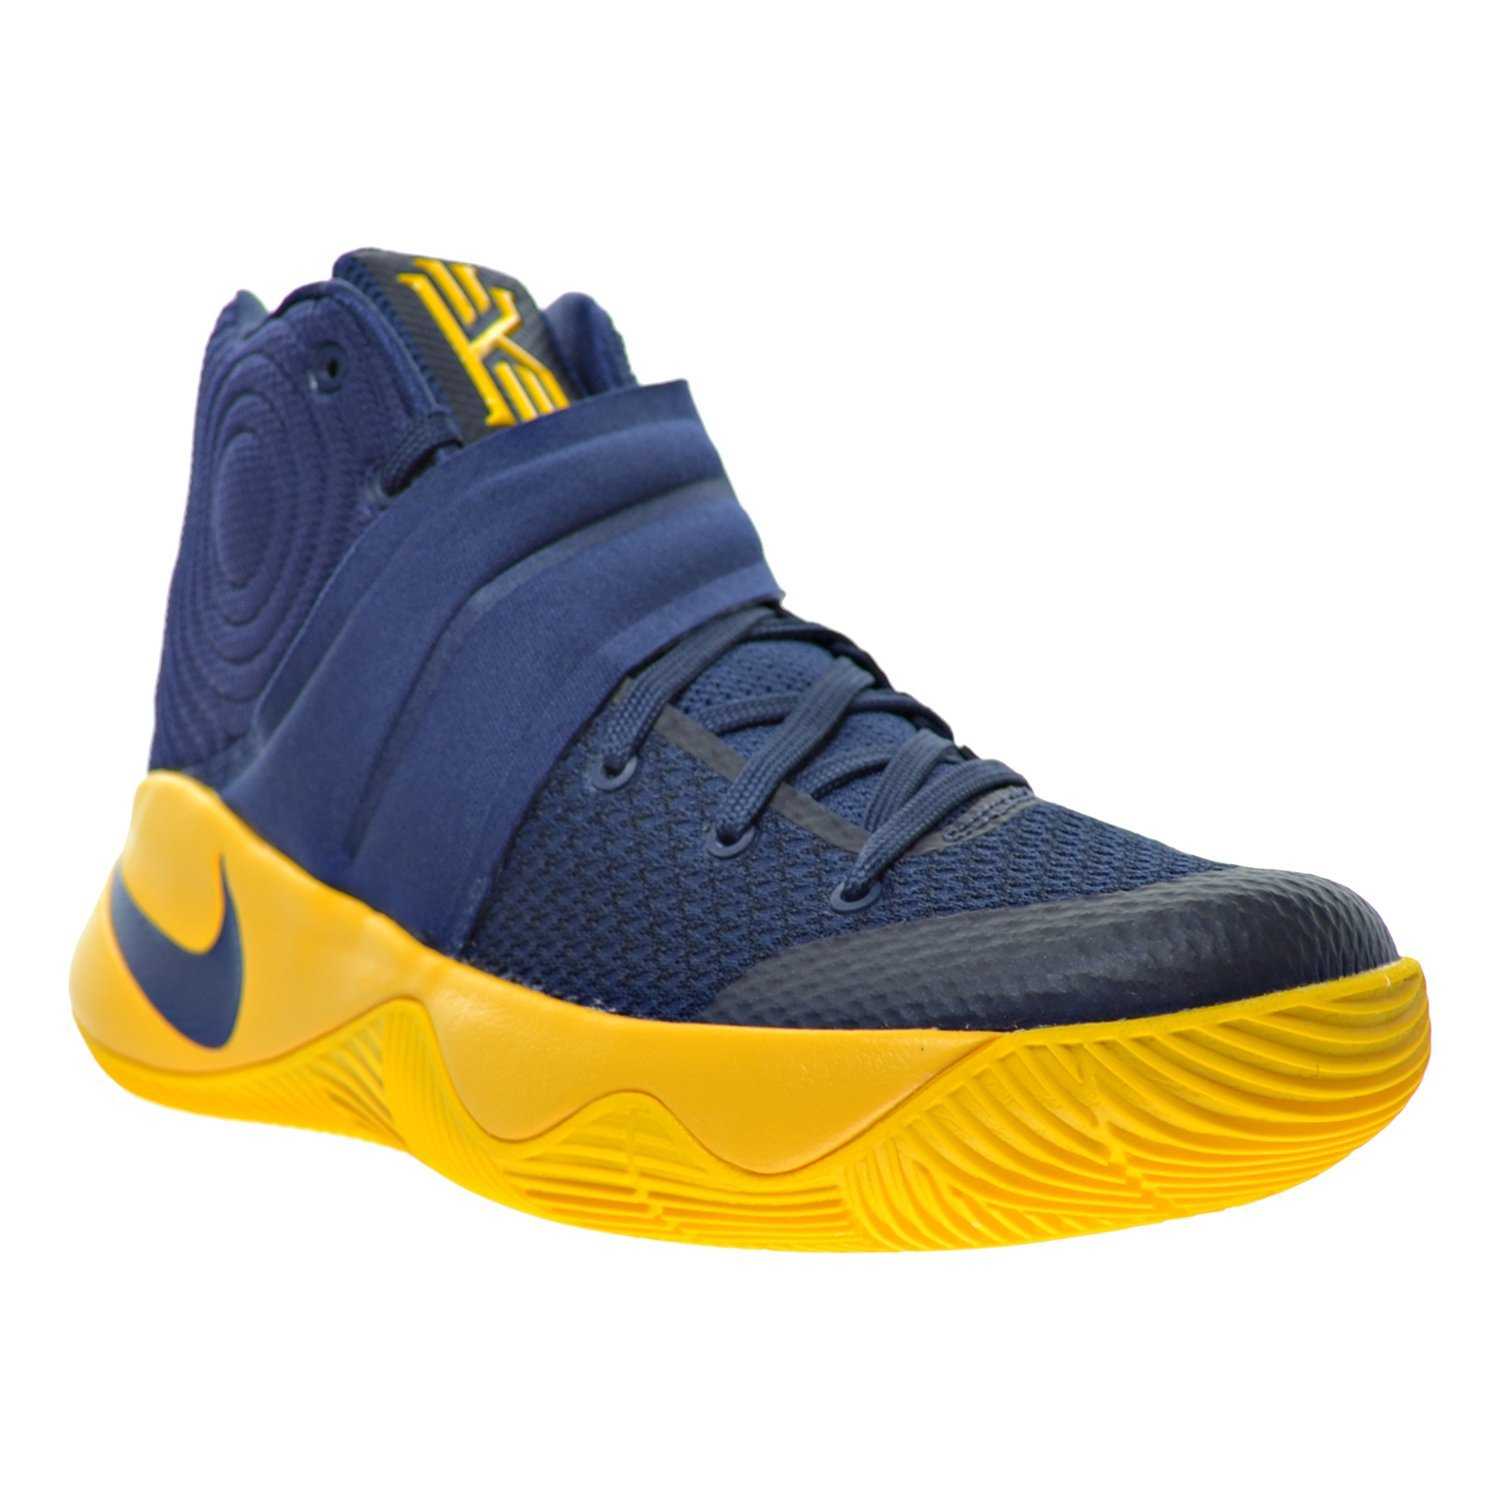 01eb2f1b464 best price amazon nike kyrie 2 mens shoes midnight navy university gold  university red 819583 447